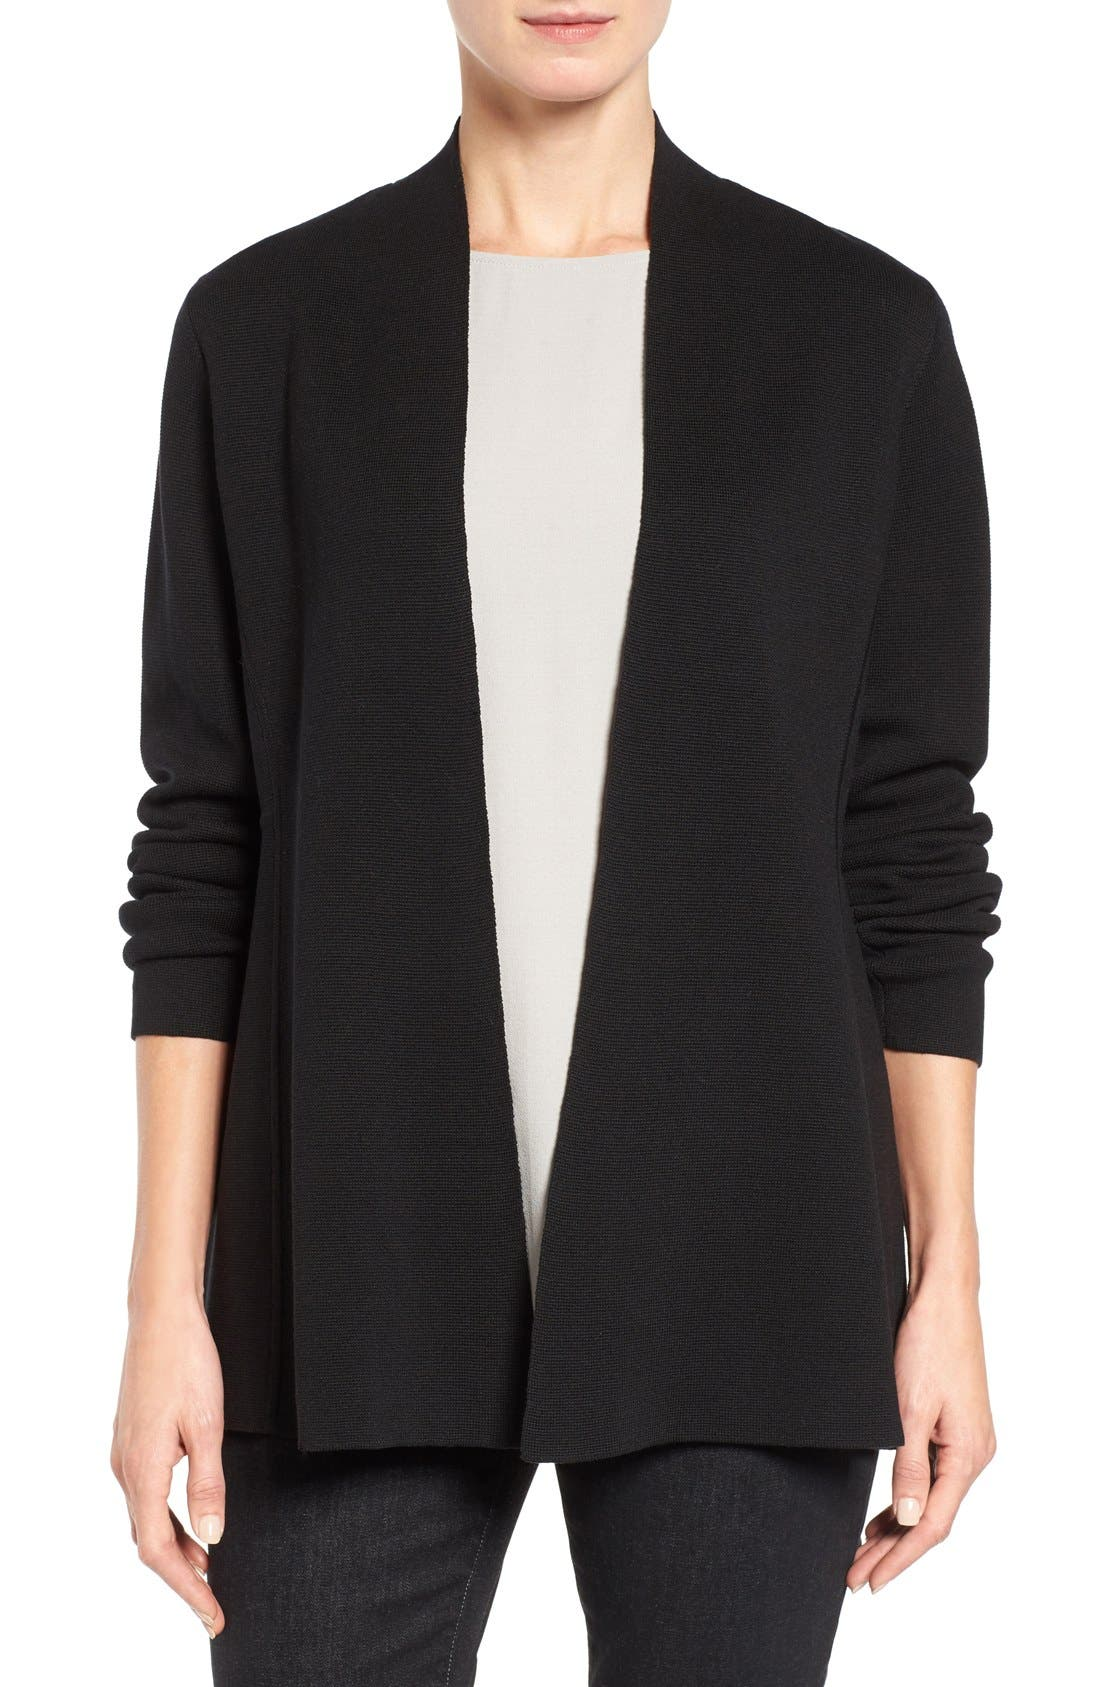 Alternate Image 1 Selected - Eileen Fisher Silk & Organic Cotton Cardigan (Nordstrom Exclusive)